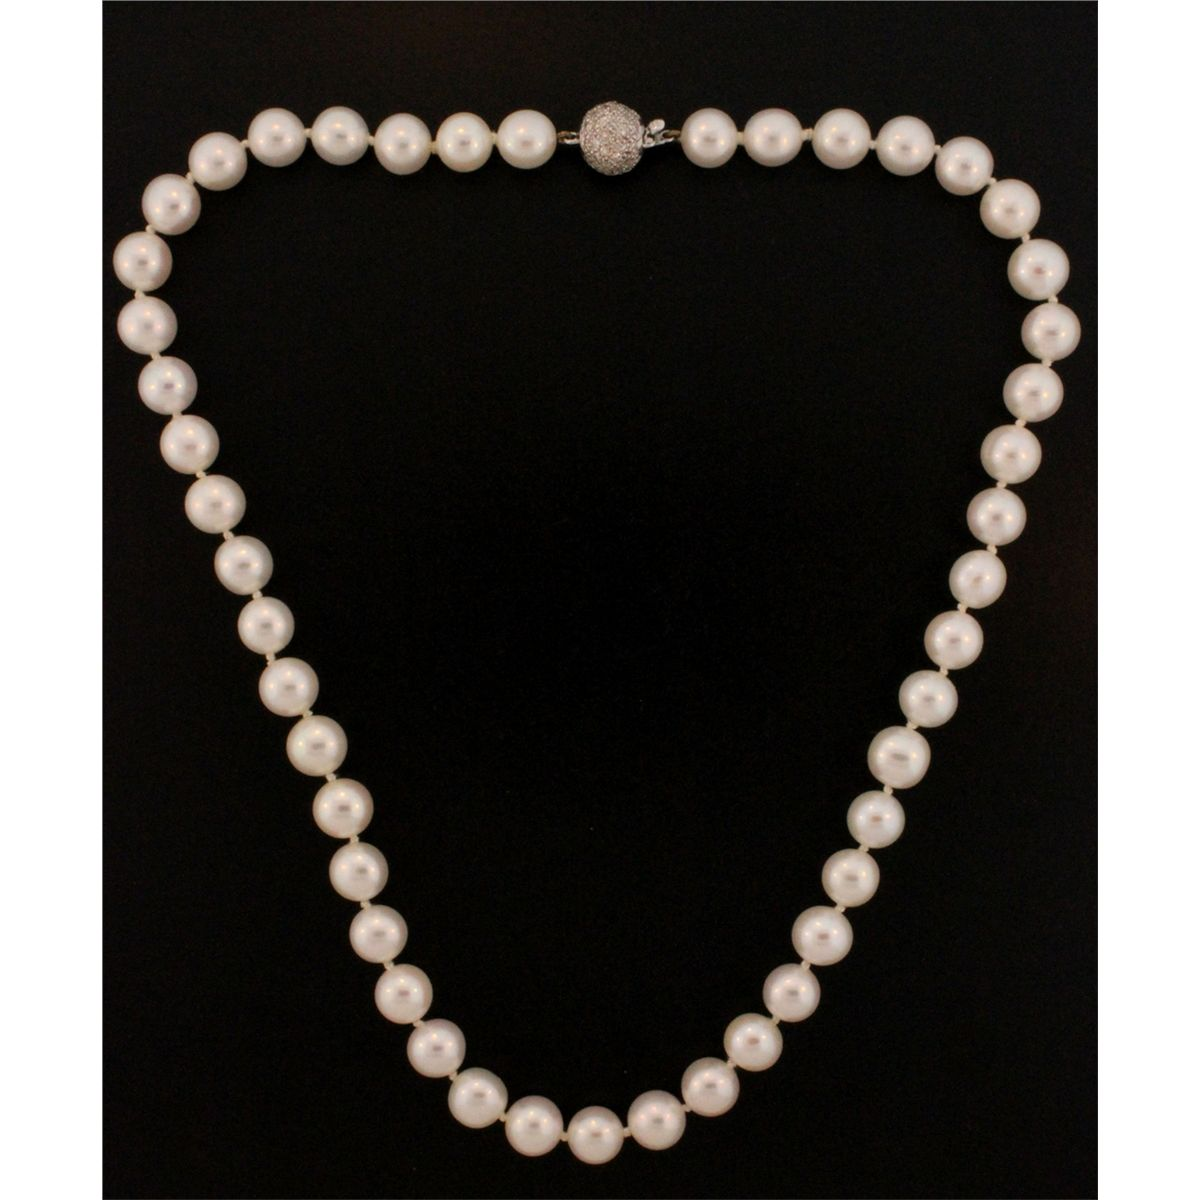 Single Strand Pearl Necklace: NECKLACE: Single Strand Cultured Pearl Necklace